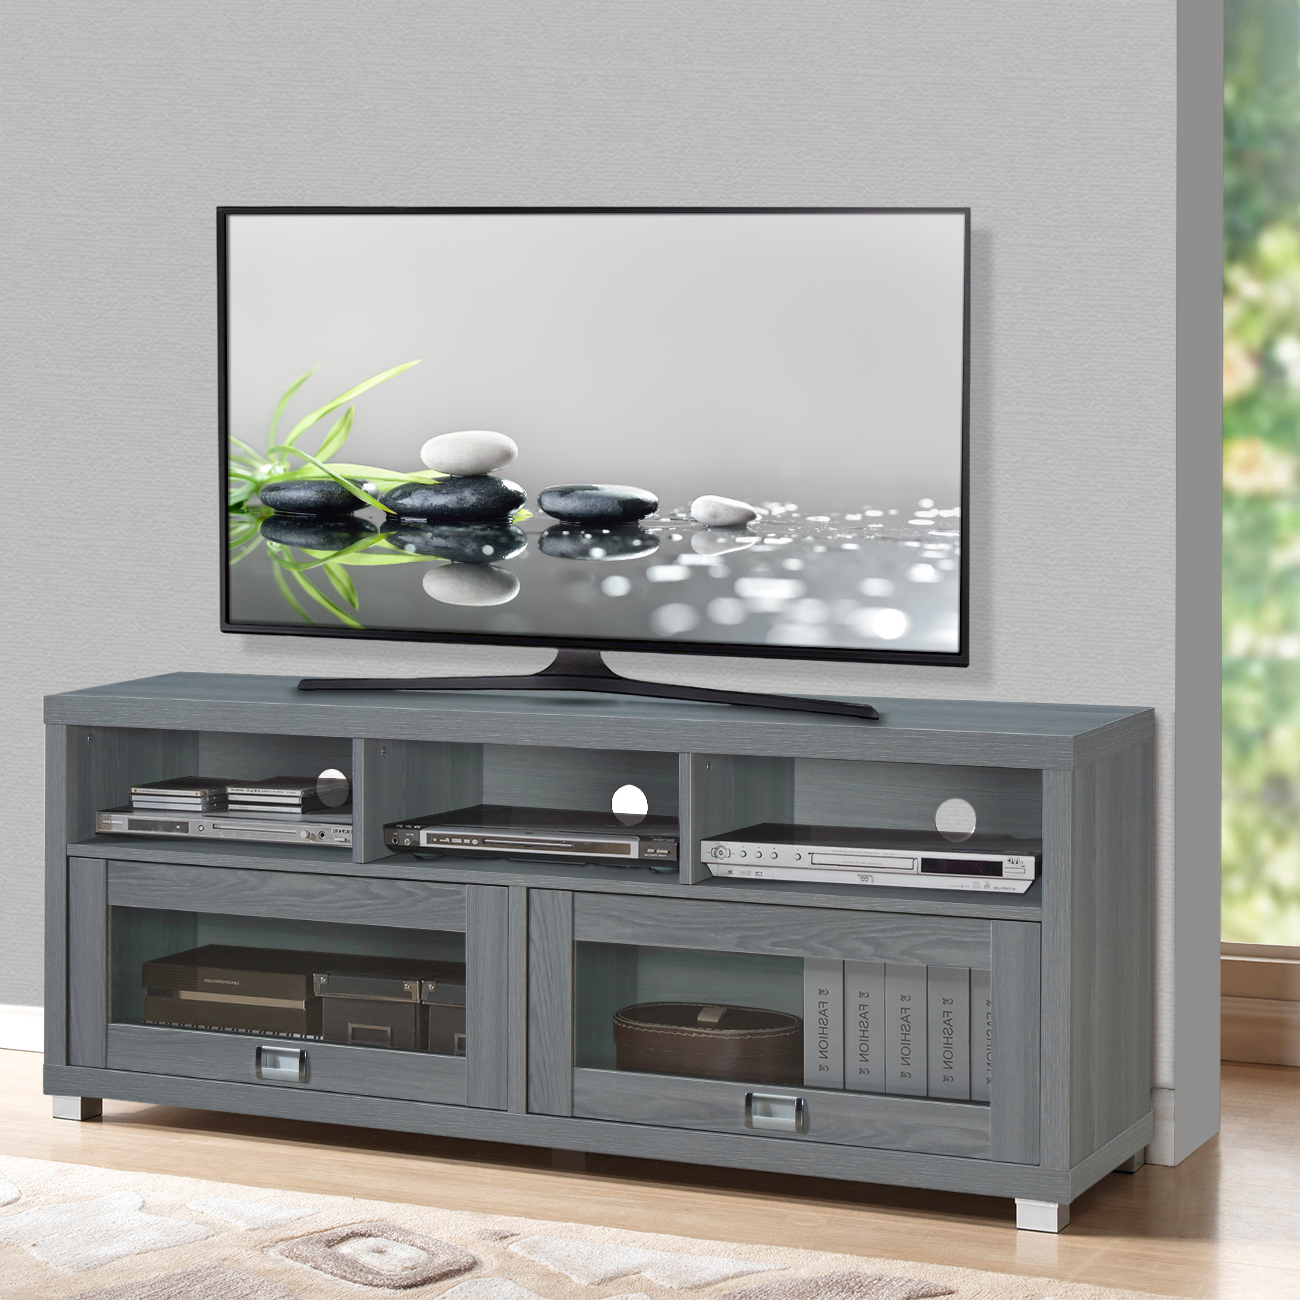 """Well Liked Caleah Tv Stands For Tvs Up To 50"""" Intended For Flat Screen Tv Stand Up To 75 Inch 50 55 60 65 70 55in (View 15 of 25)"""